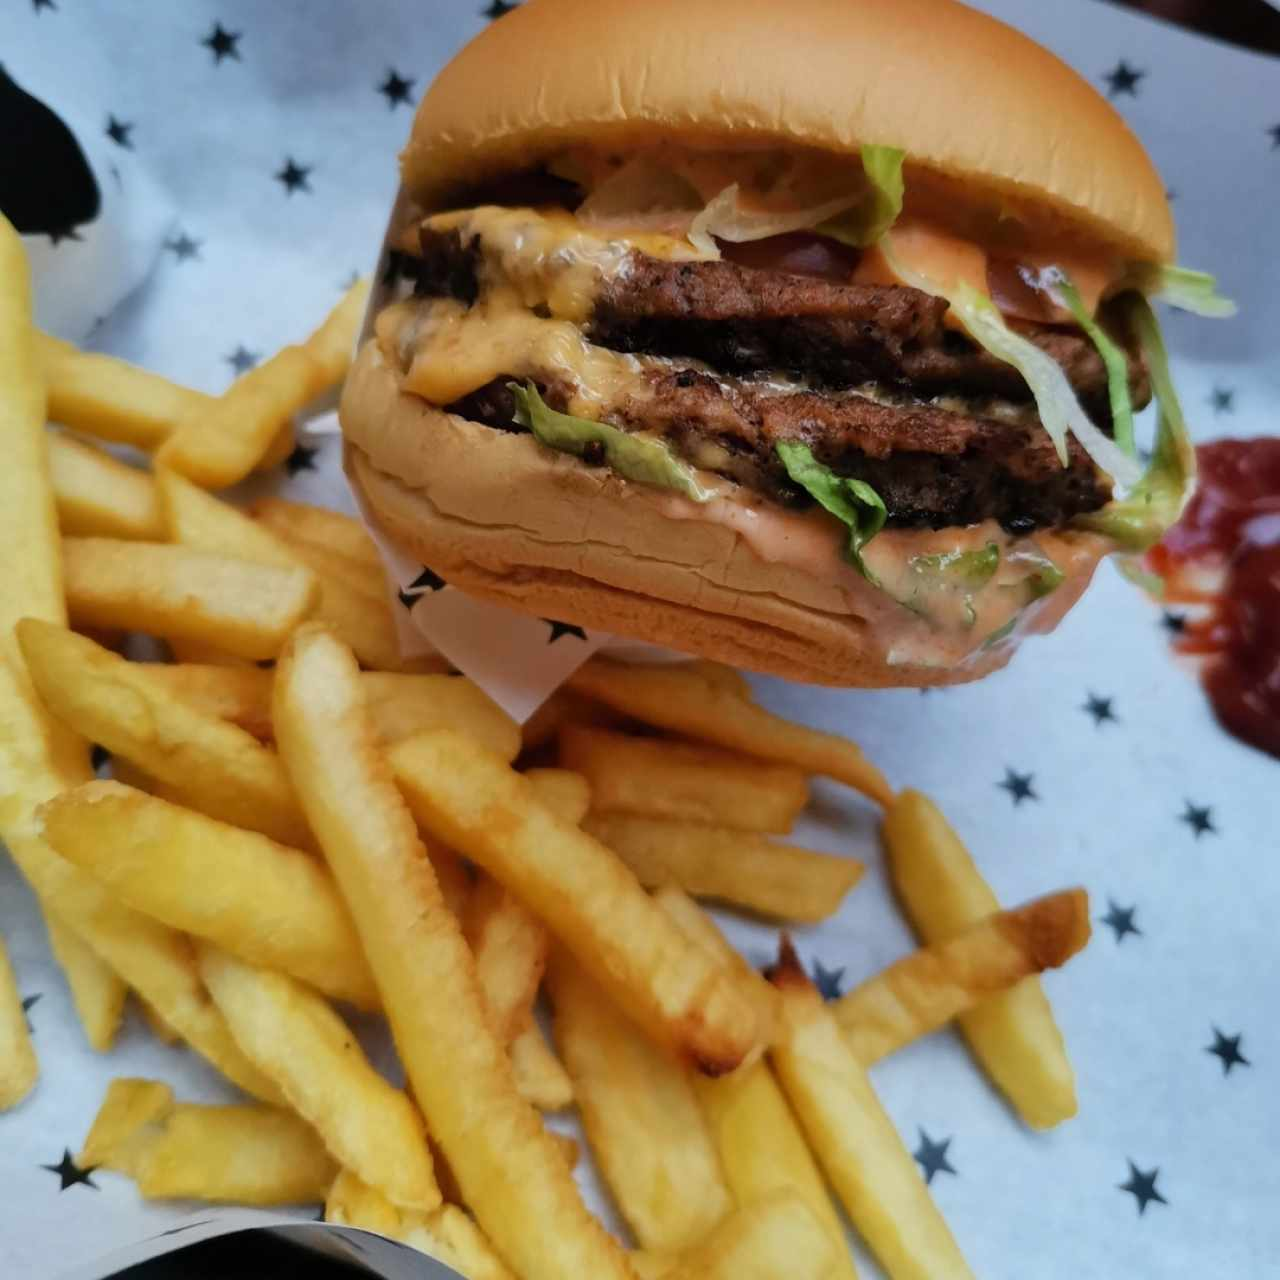 Cheeseburger - Doble